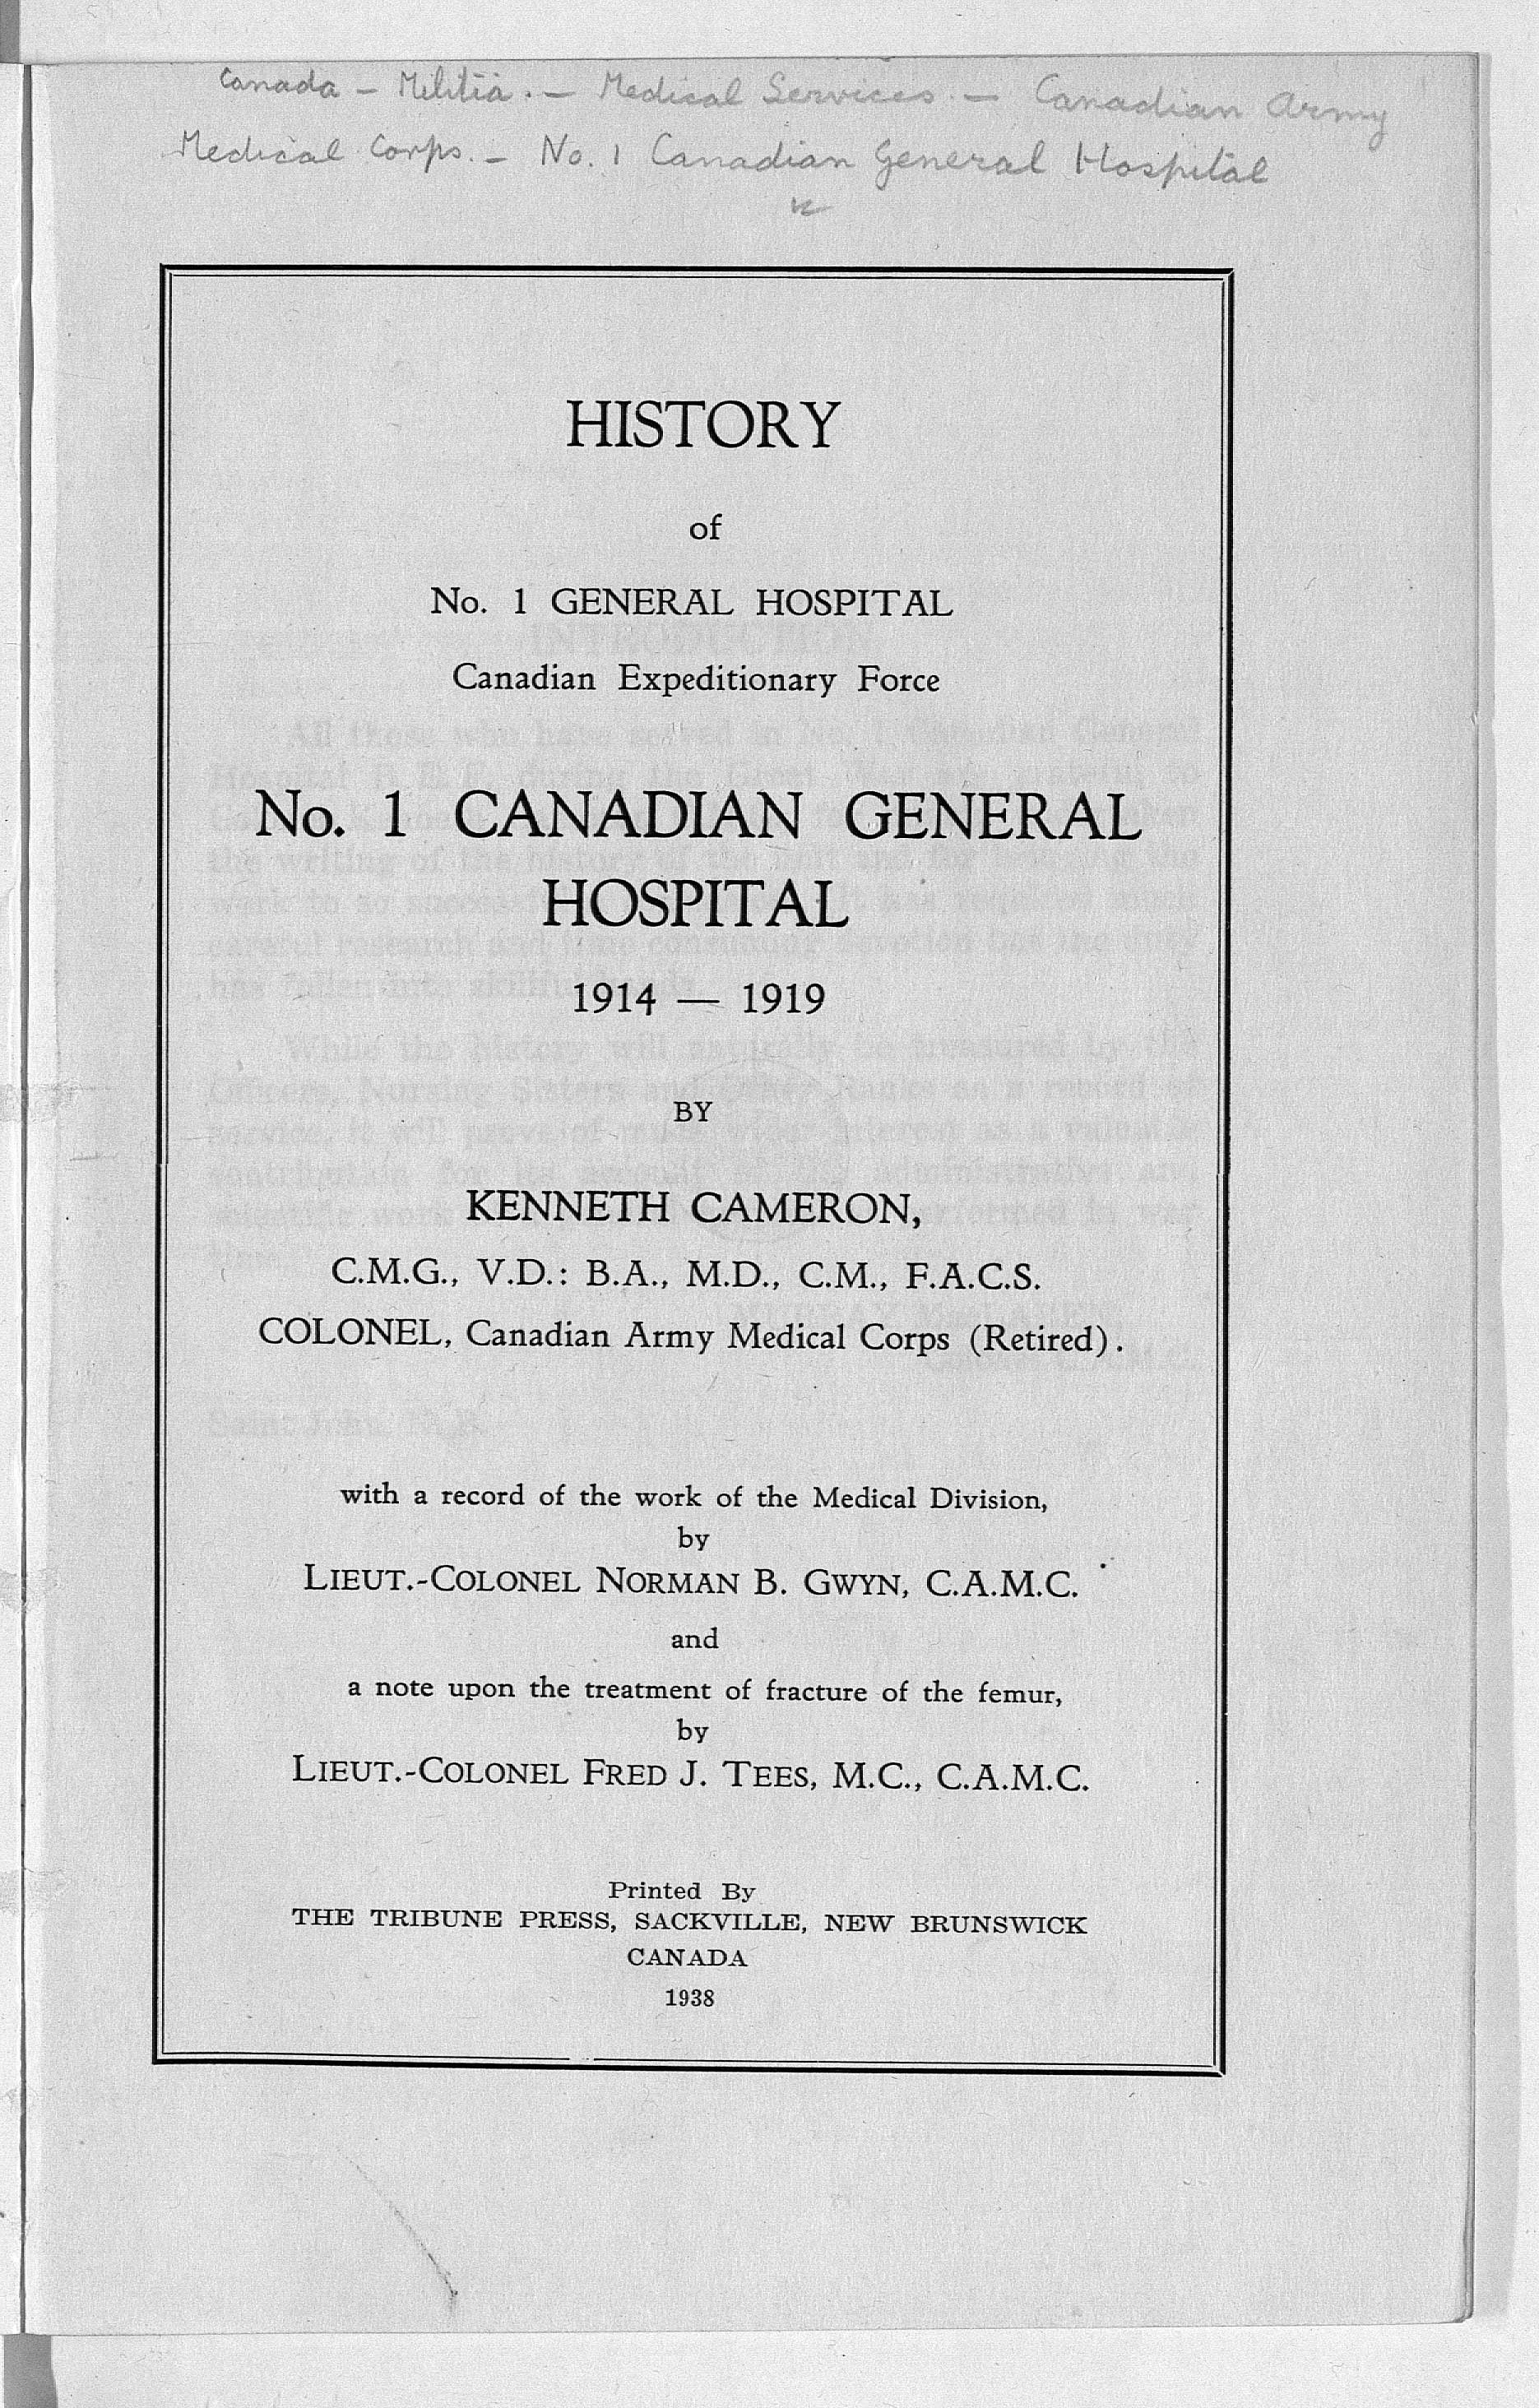 Drawn from interviews and official documents, this is an account of one of the four main hospitals attached to the First Canadian Contingent, 1938.